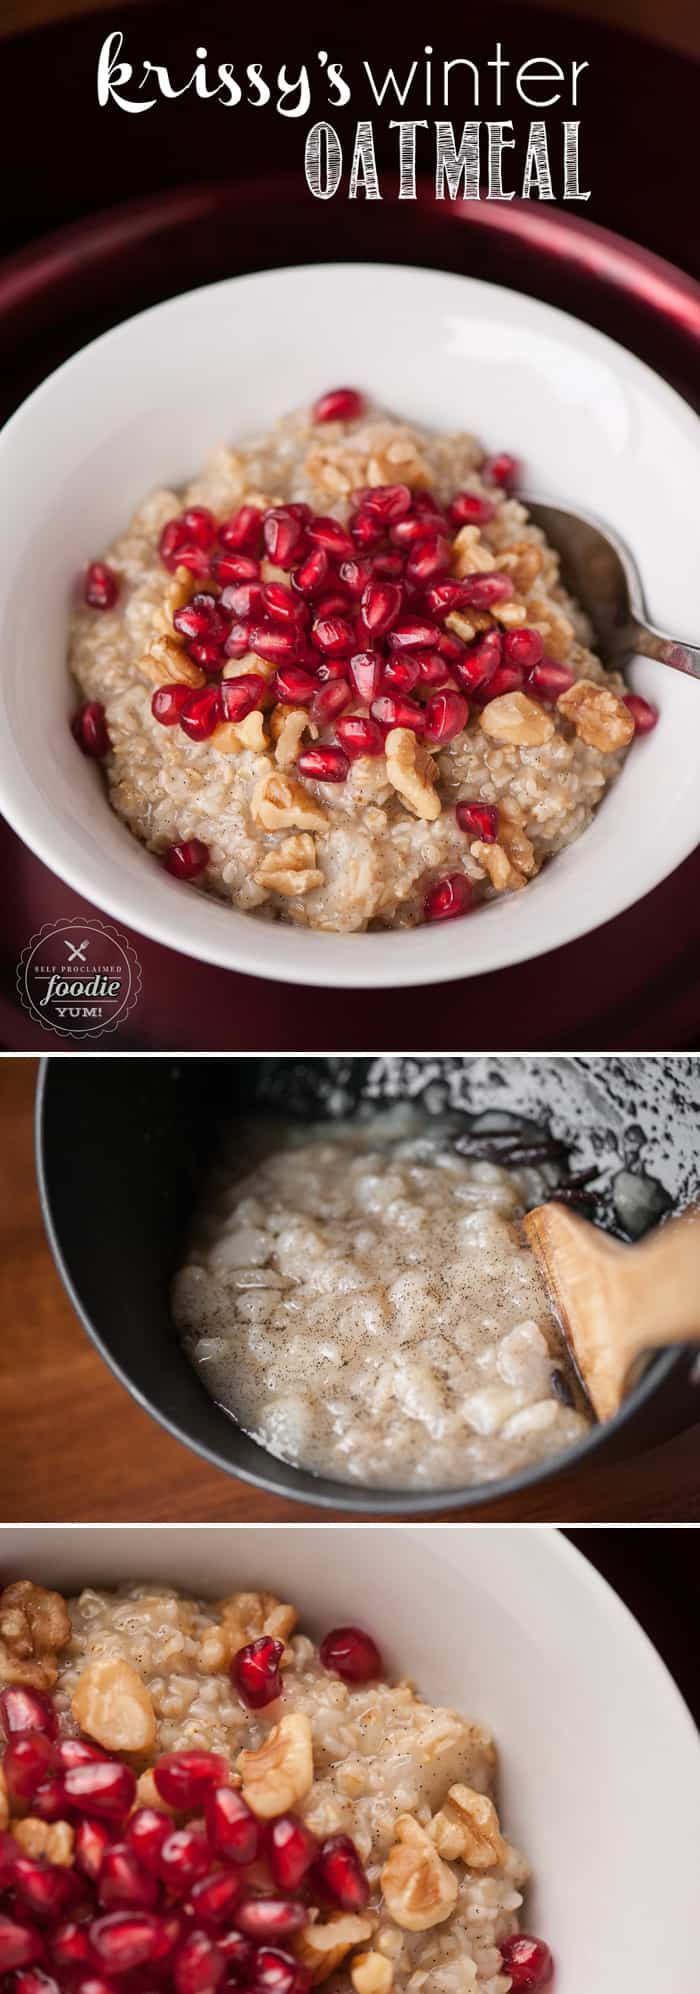 If you're looking for a healthy way to make your breakfast oats more delicious, Krissy's Winter Oatmeal uses pear, pomegranate, vanilla bean & more.